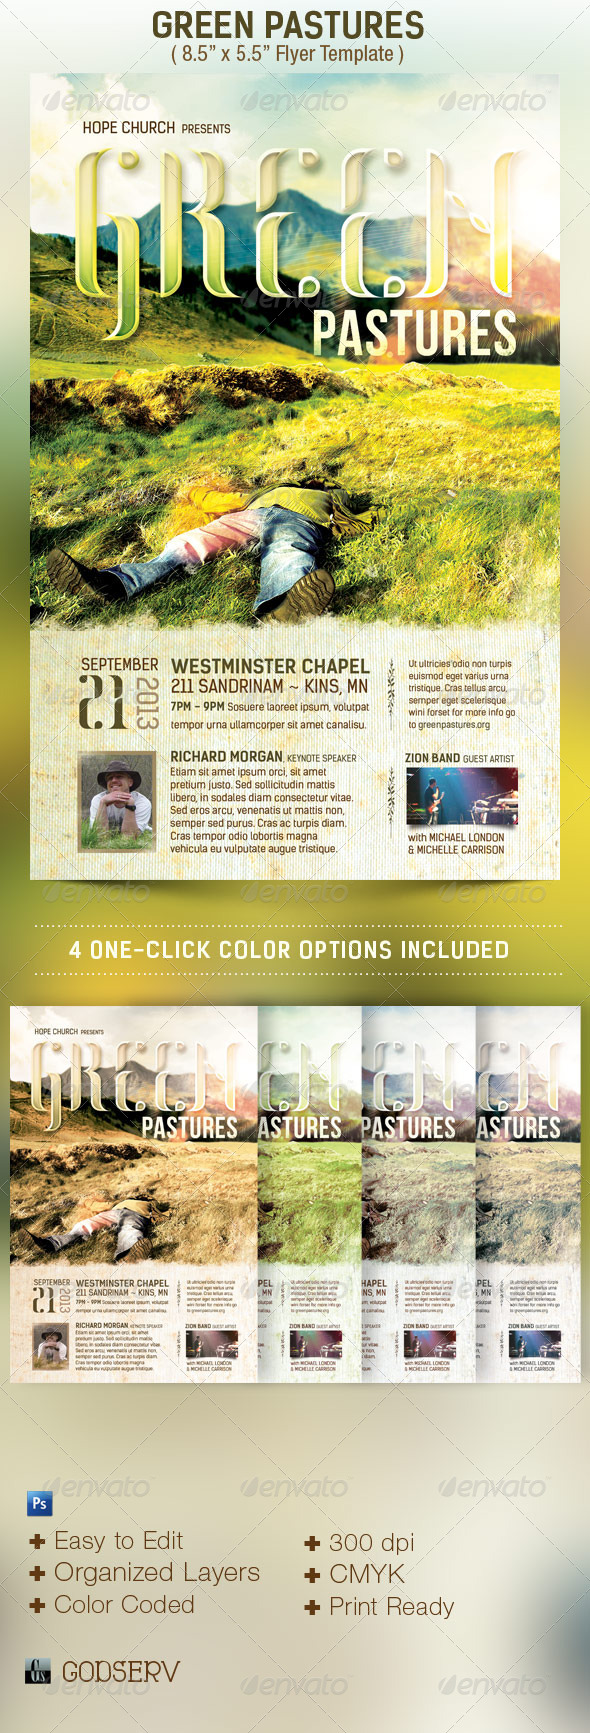 Green Pastures Church Flyer Template - Church Flyers